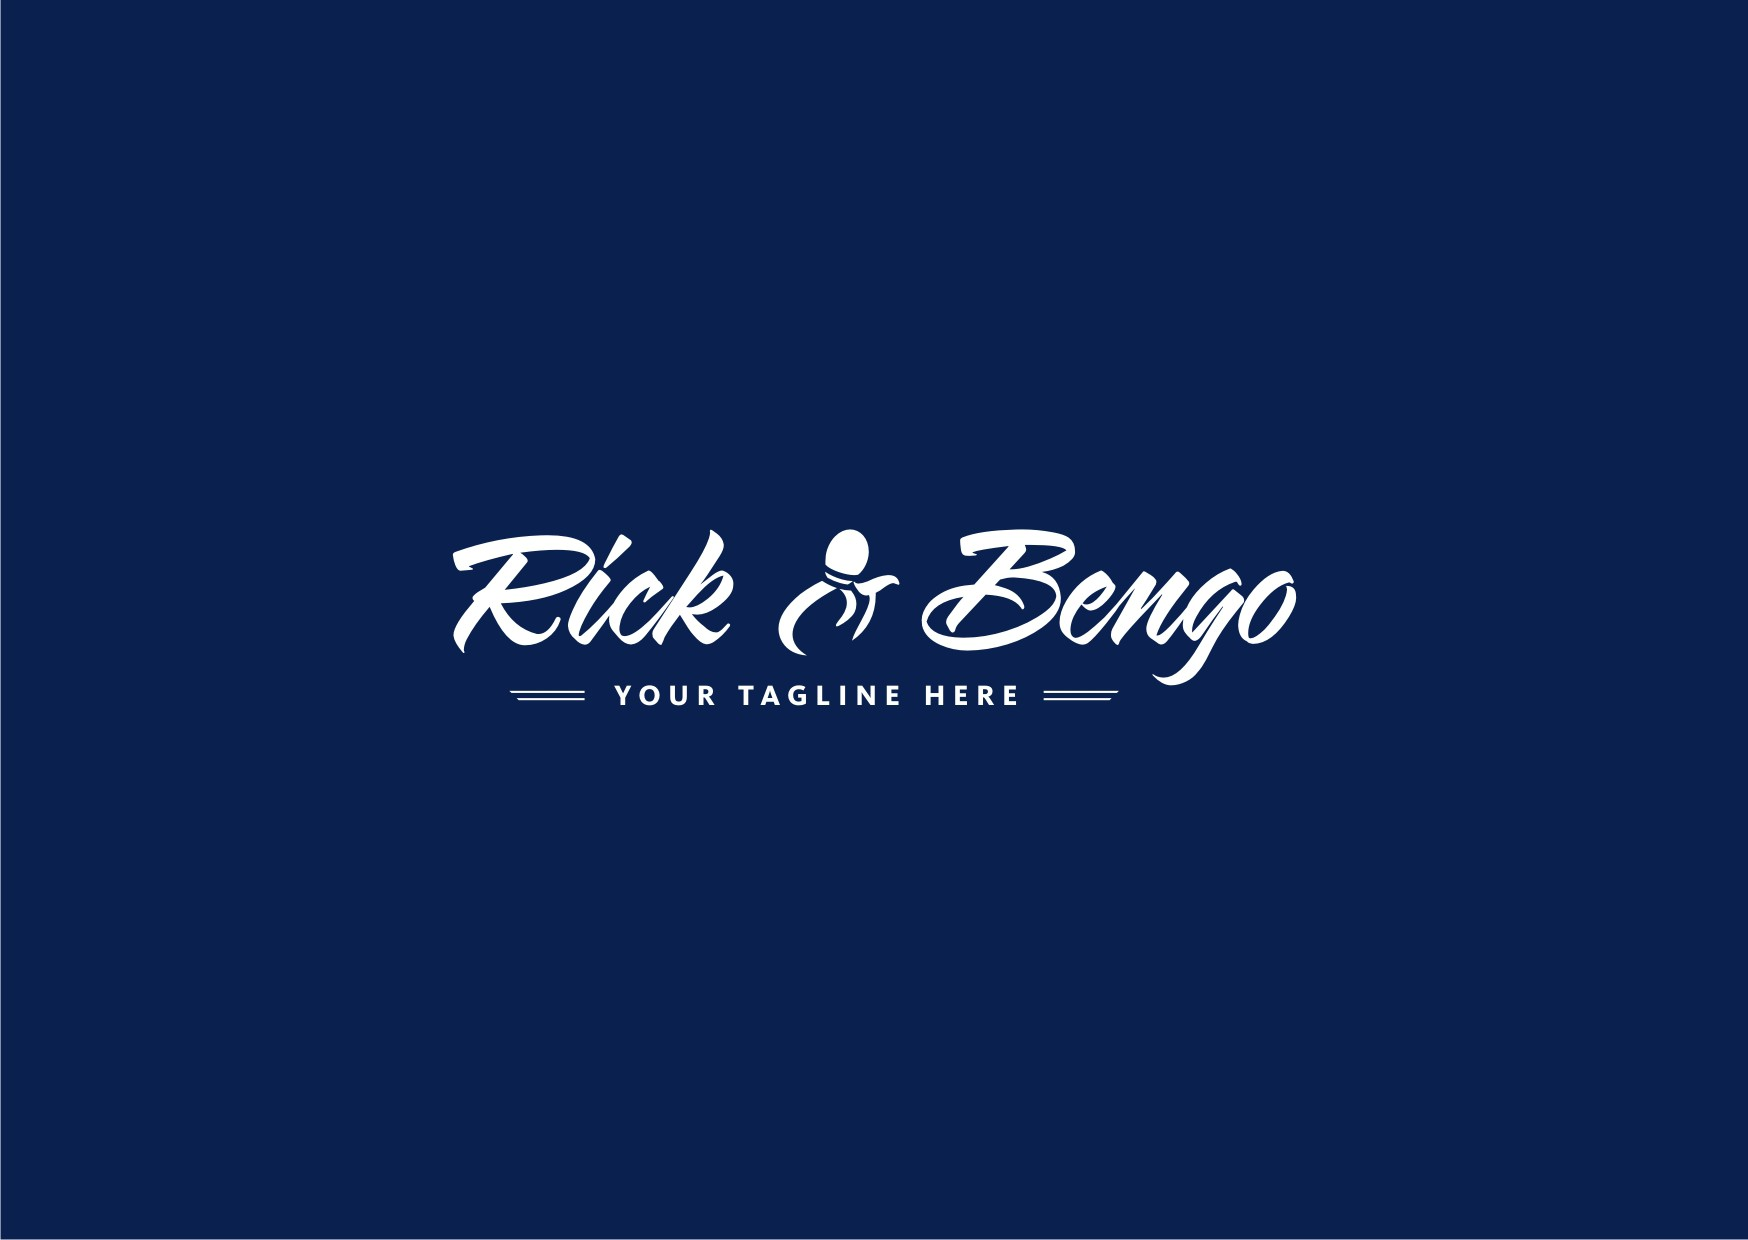 Create a logo for Rick & Bengo